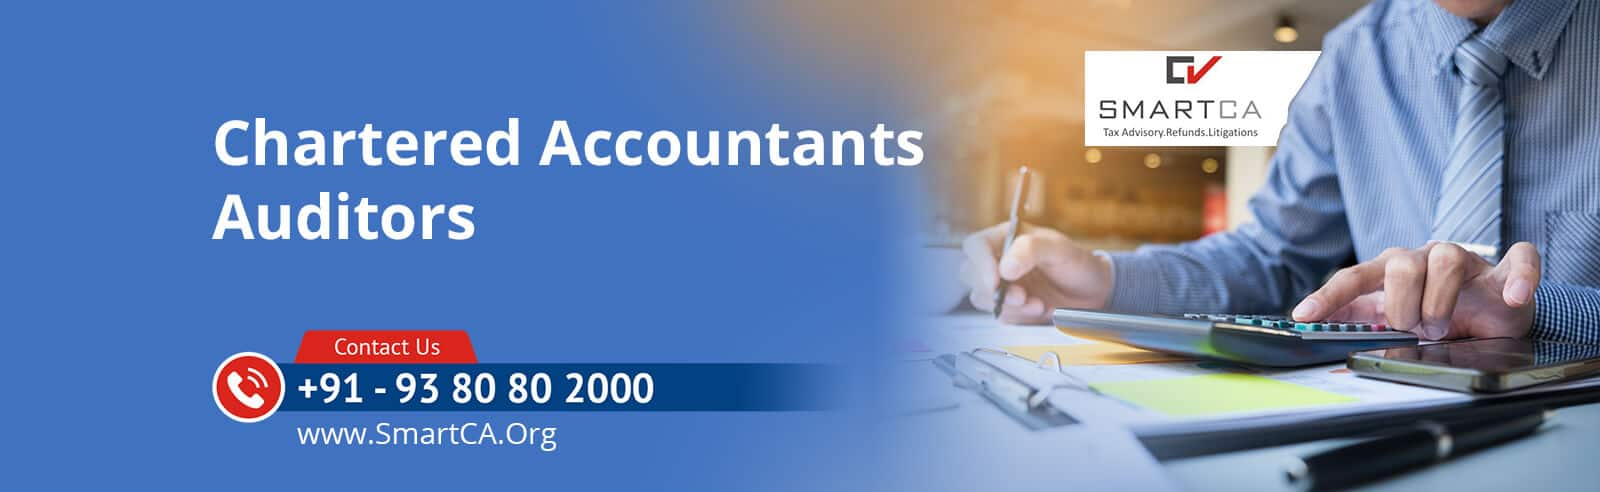 Auditors in Chennai Saligramam